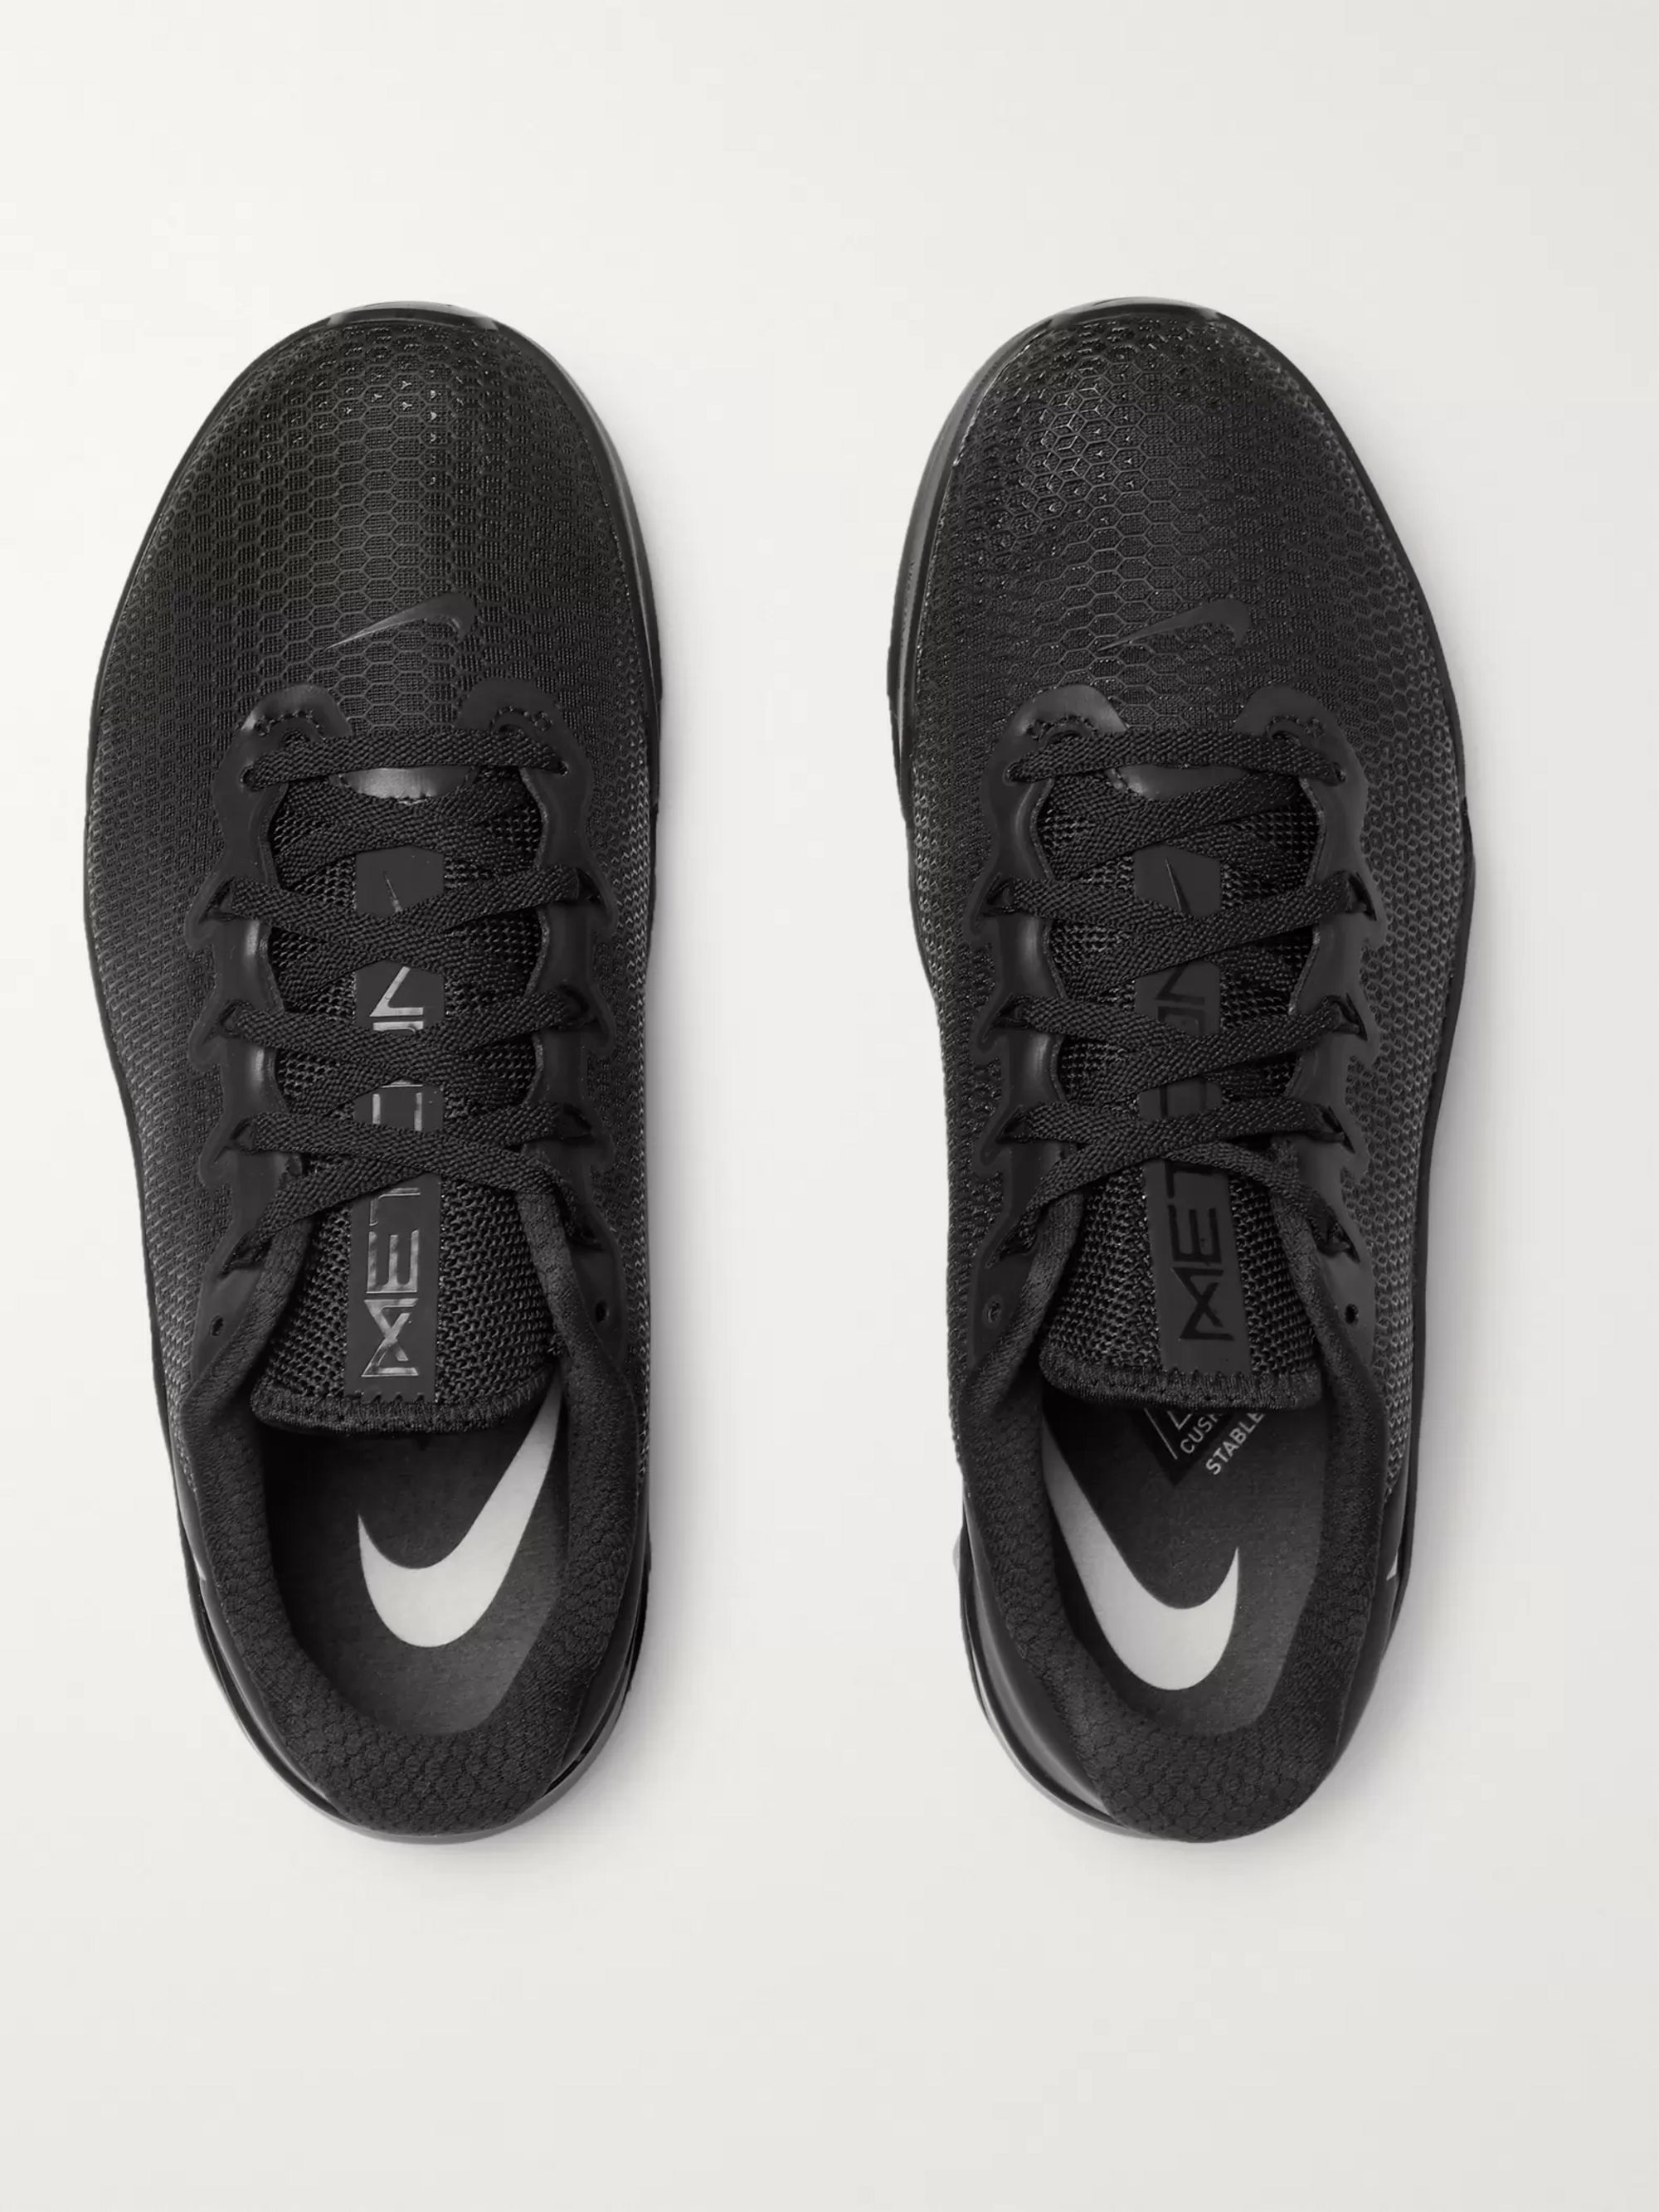 Nike Training Metcon 5 Rubber-Trimmed Mesh Sneakers